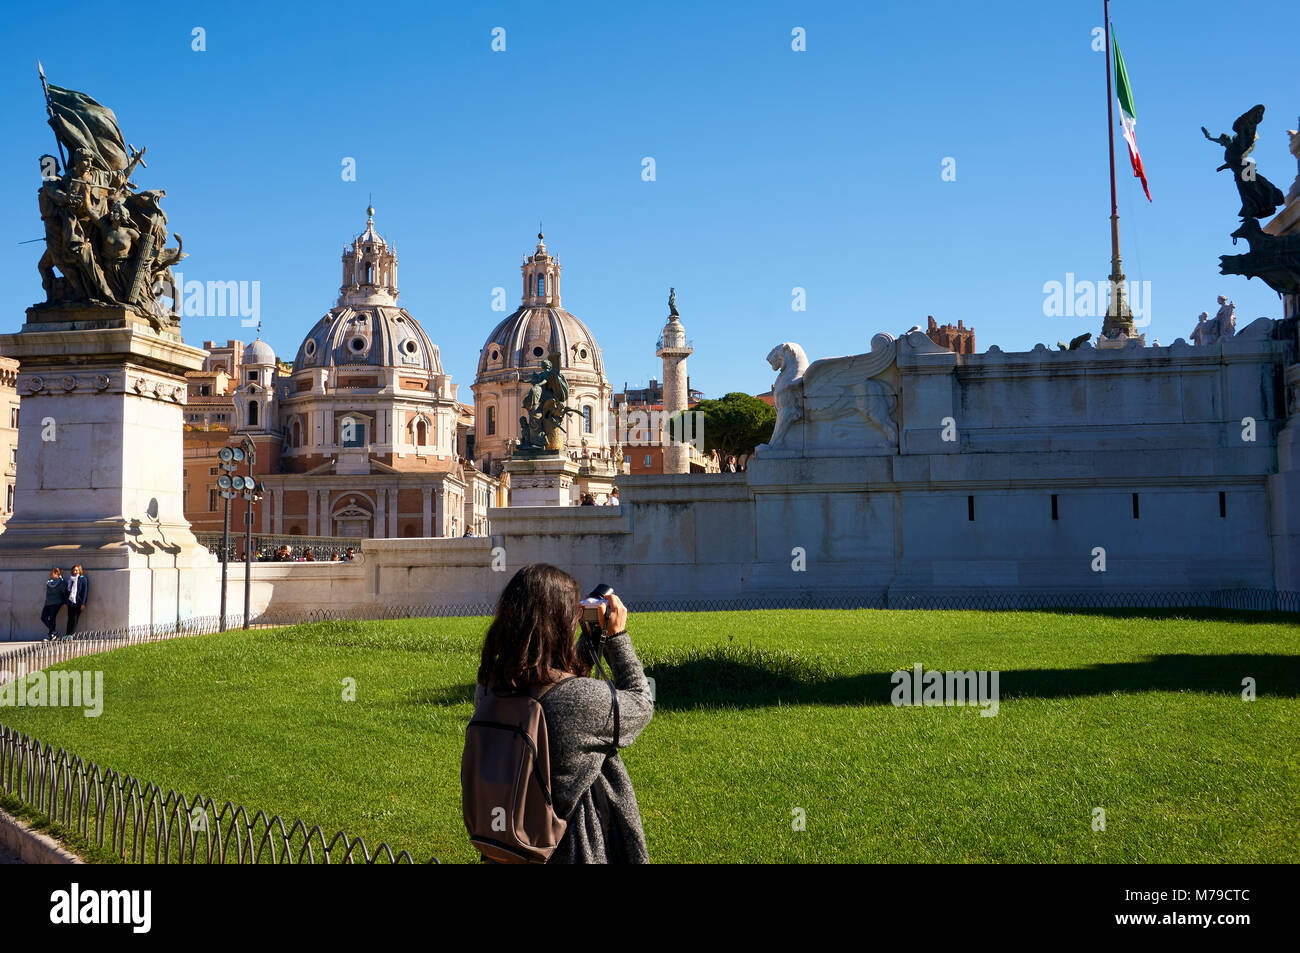 Rome, Italy - October 12, 2016: Girl taking photos of Palazzo Valentini Domus in Rome, Italy - Stock Image